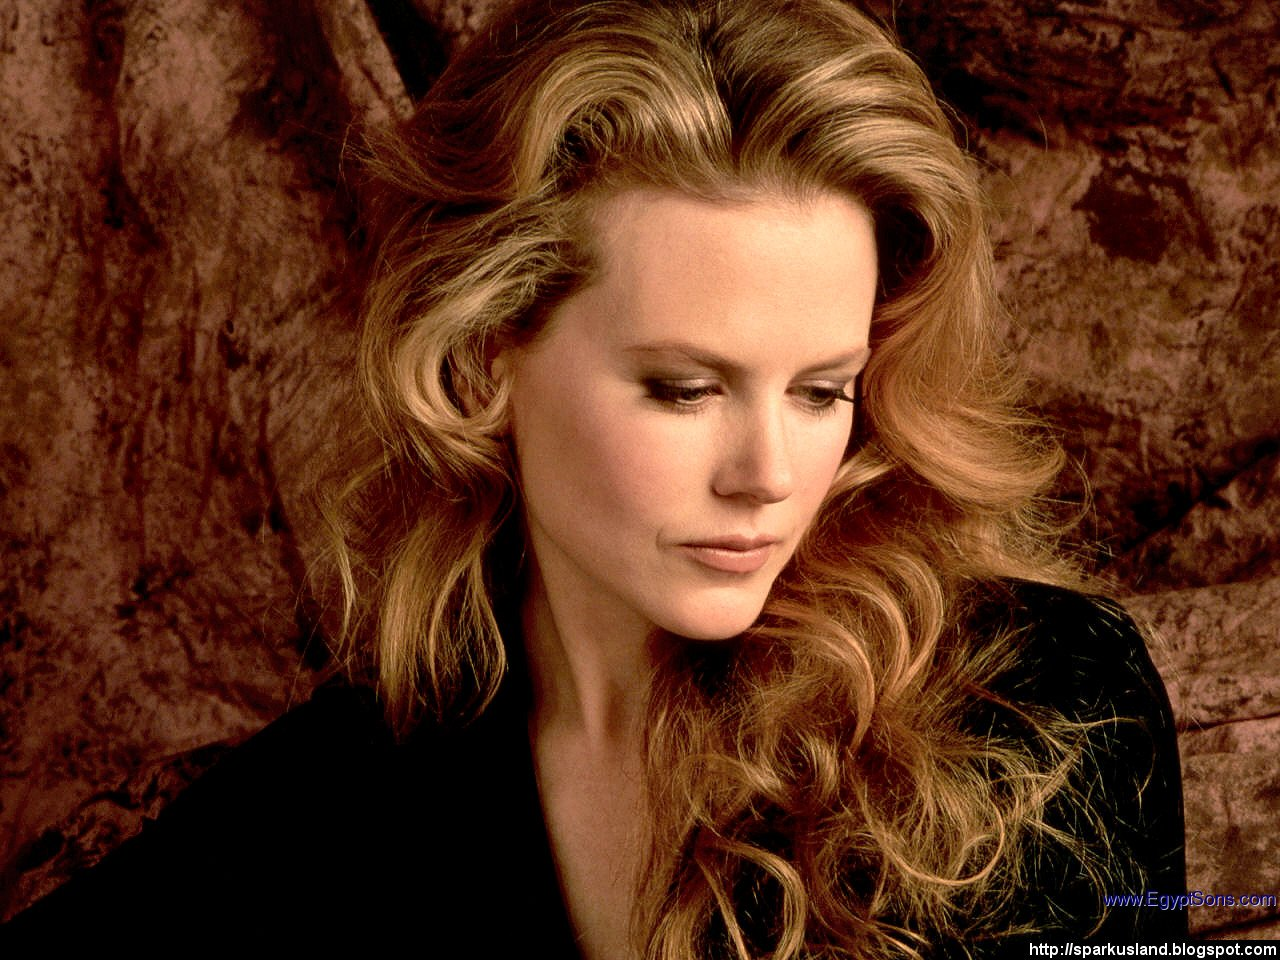 Nicole Kidman Pictures and Hairstyles